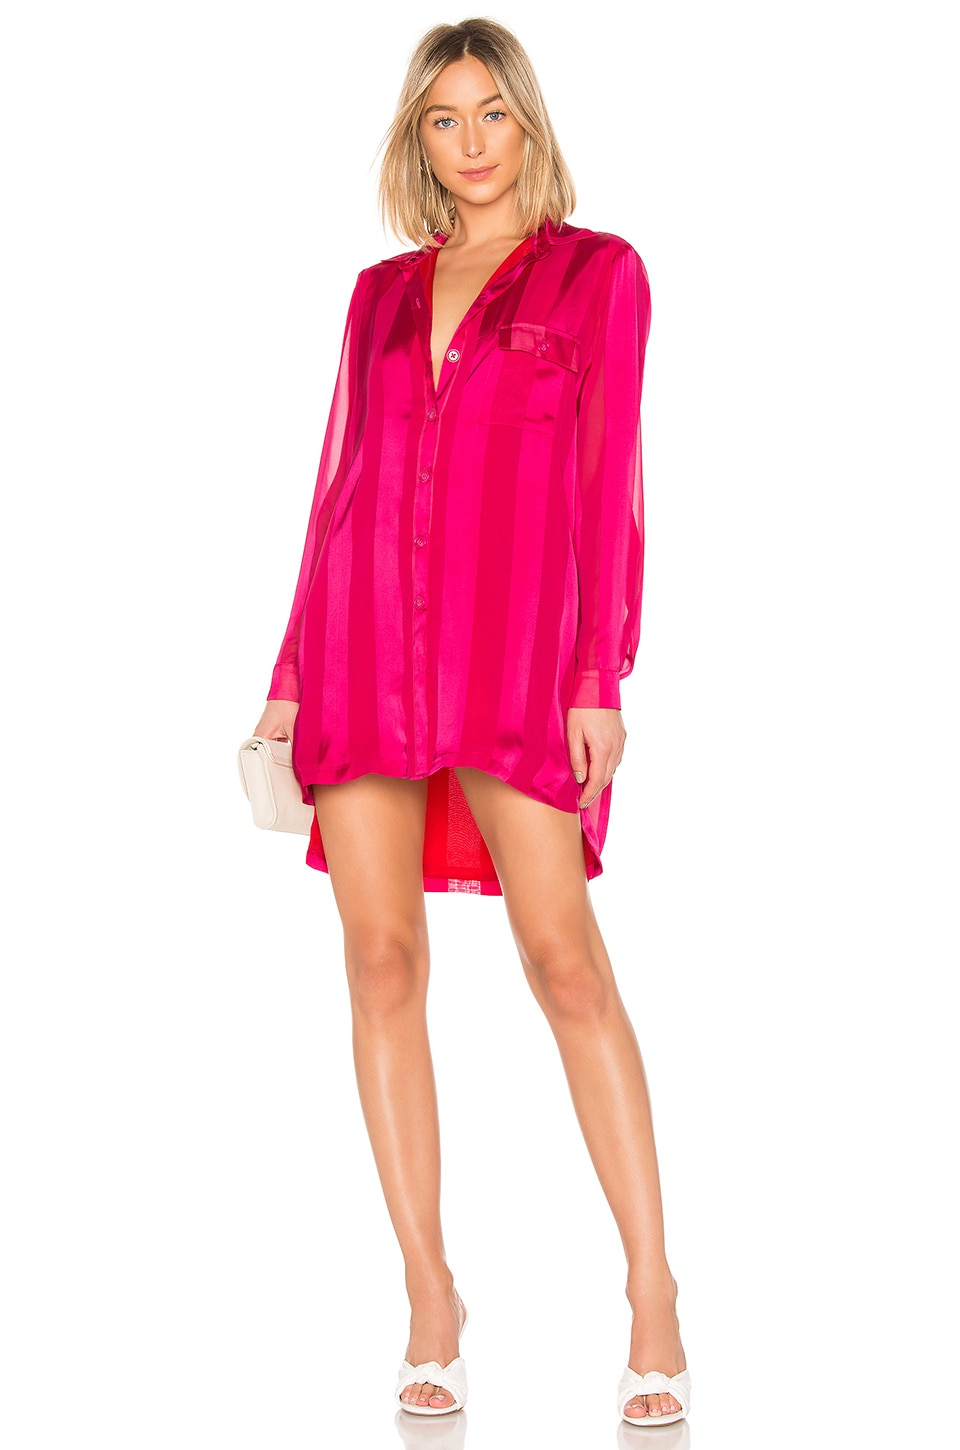 House of Harlow 1960 x REVOLVE Devina Dress in Fuchsia